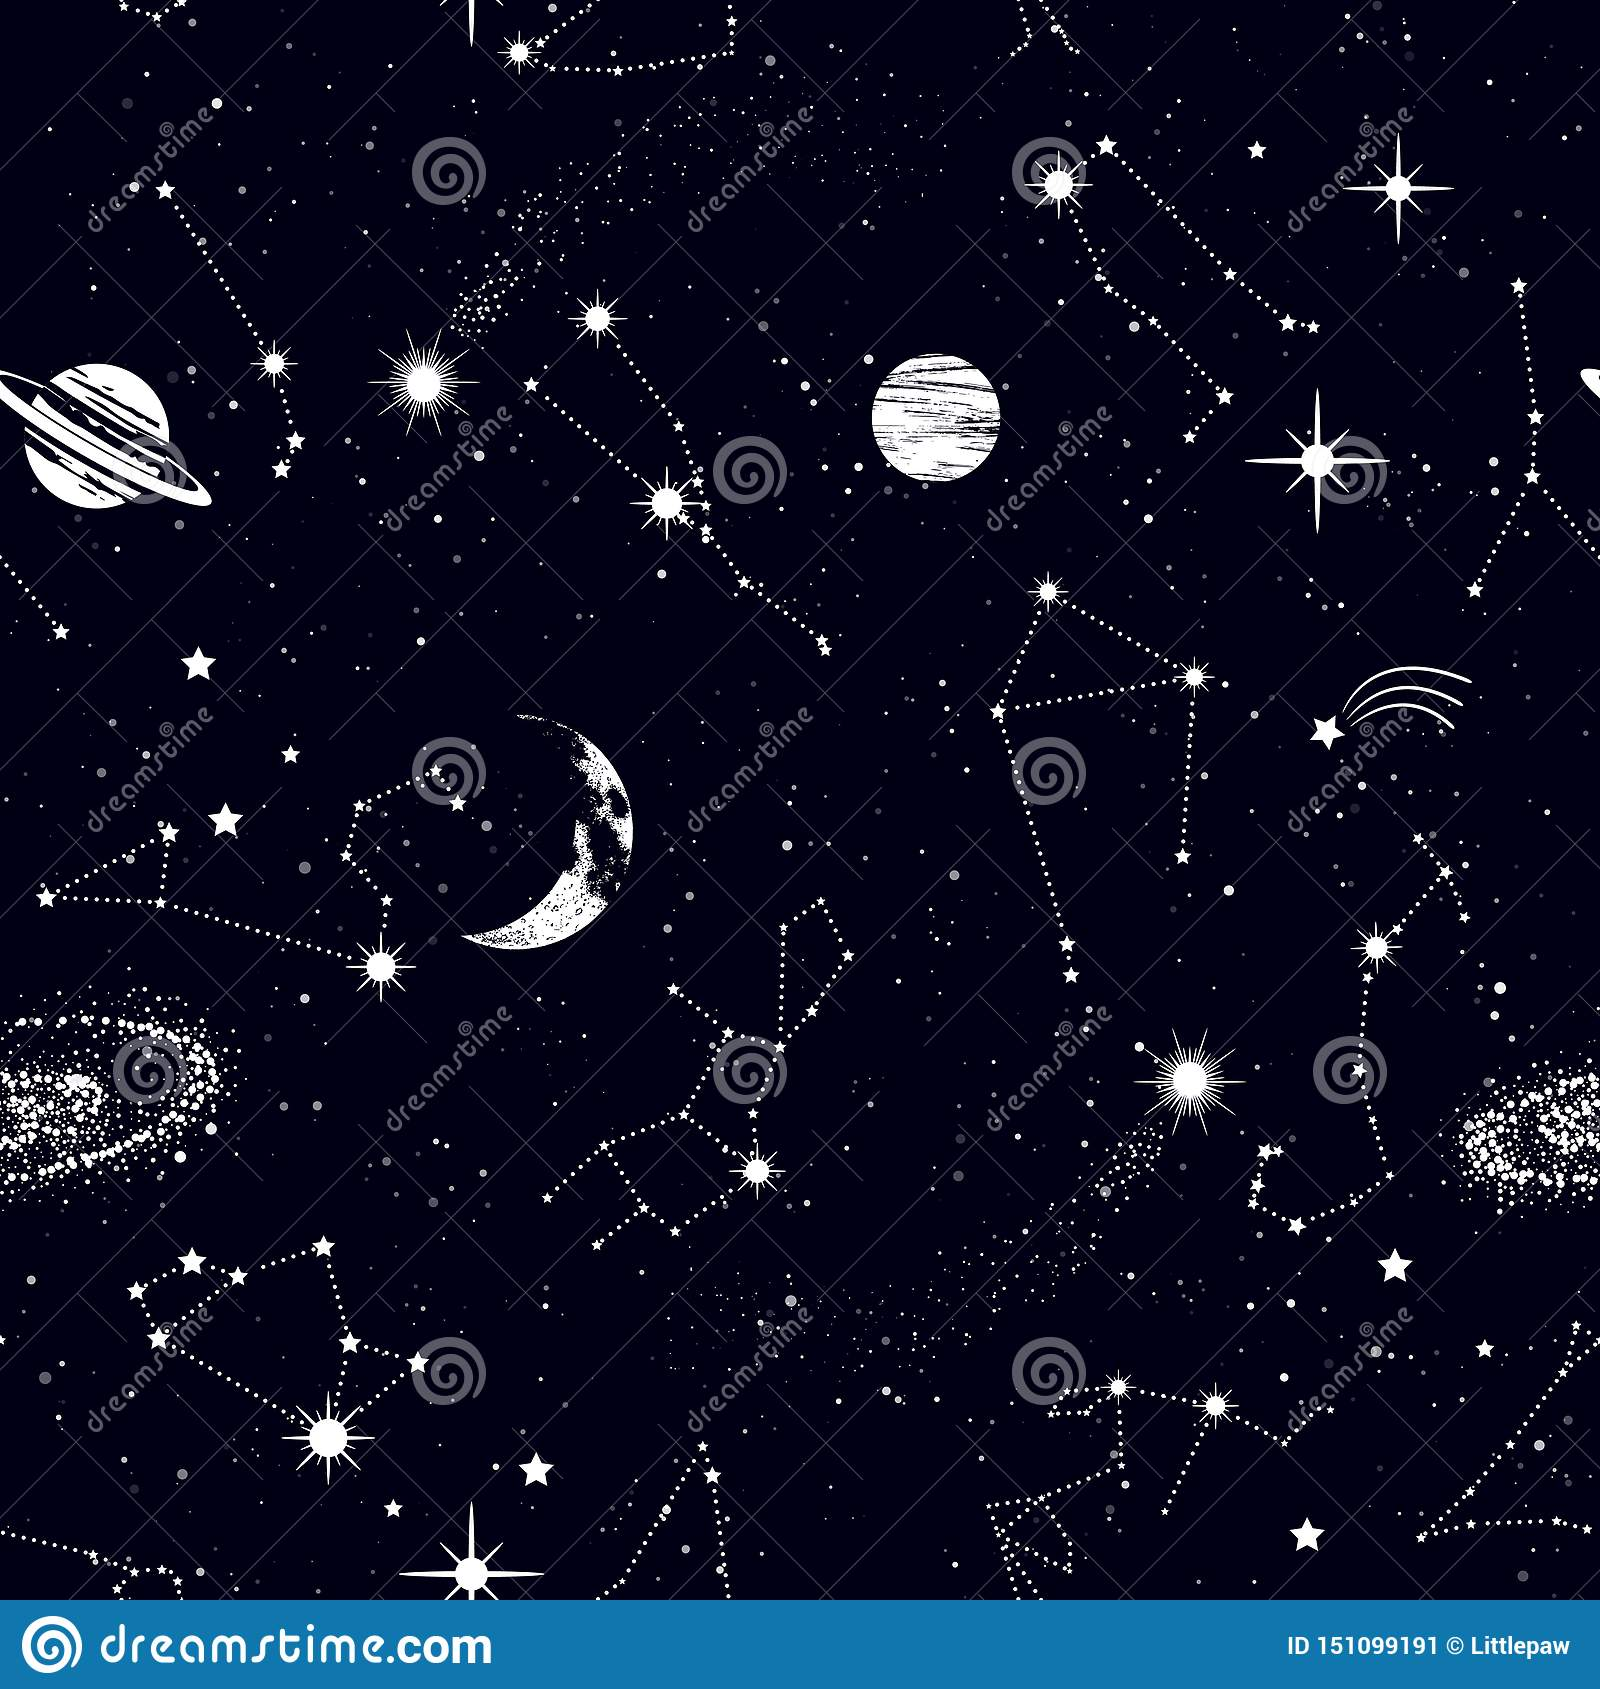 Space Seamless Pattern With Zodiac Constellations Galaxy Stars